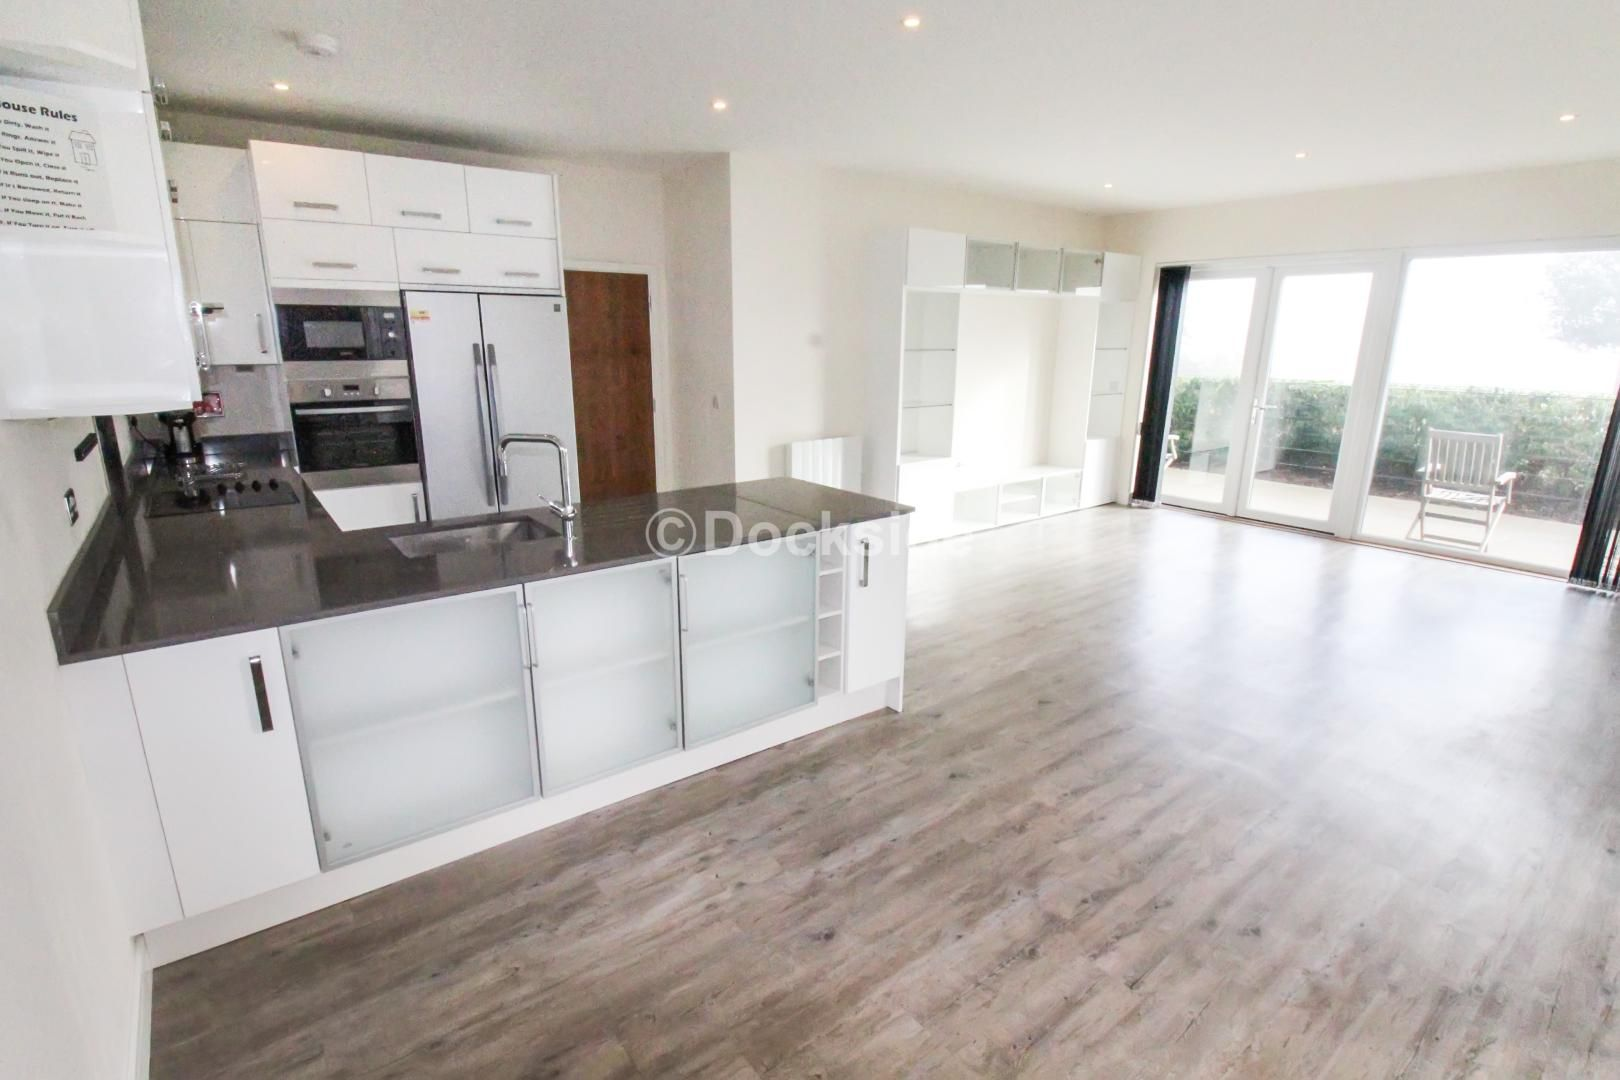 3 bed flat for sale in Pearl Lane, ME7